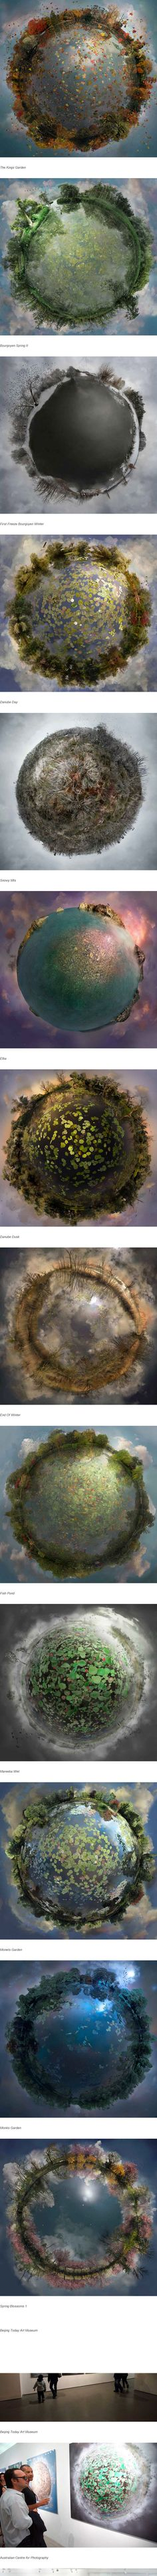 photographer Catherine Nelson learned cutting edge compositing techniques that she's now using to make fantastical planets out of her favorite landscapes